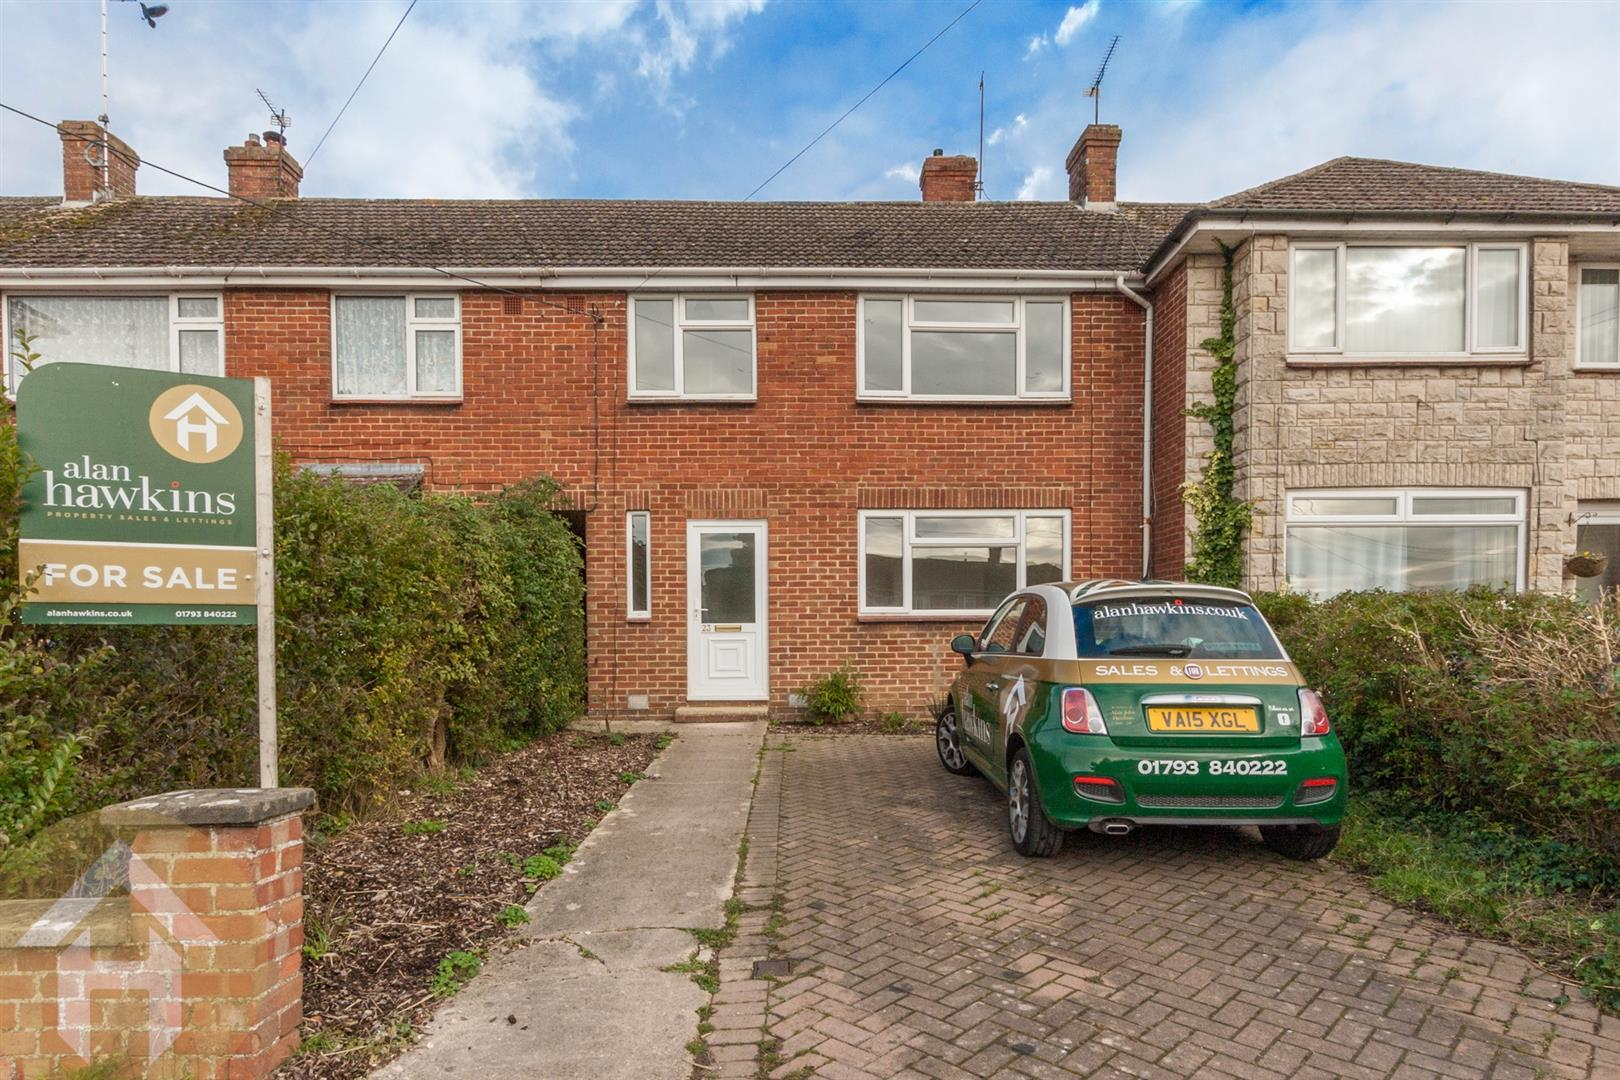 3 Bedrooms Terraced House for sale in Templars Firs, Royal Wootton Bassett